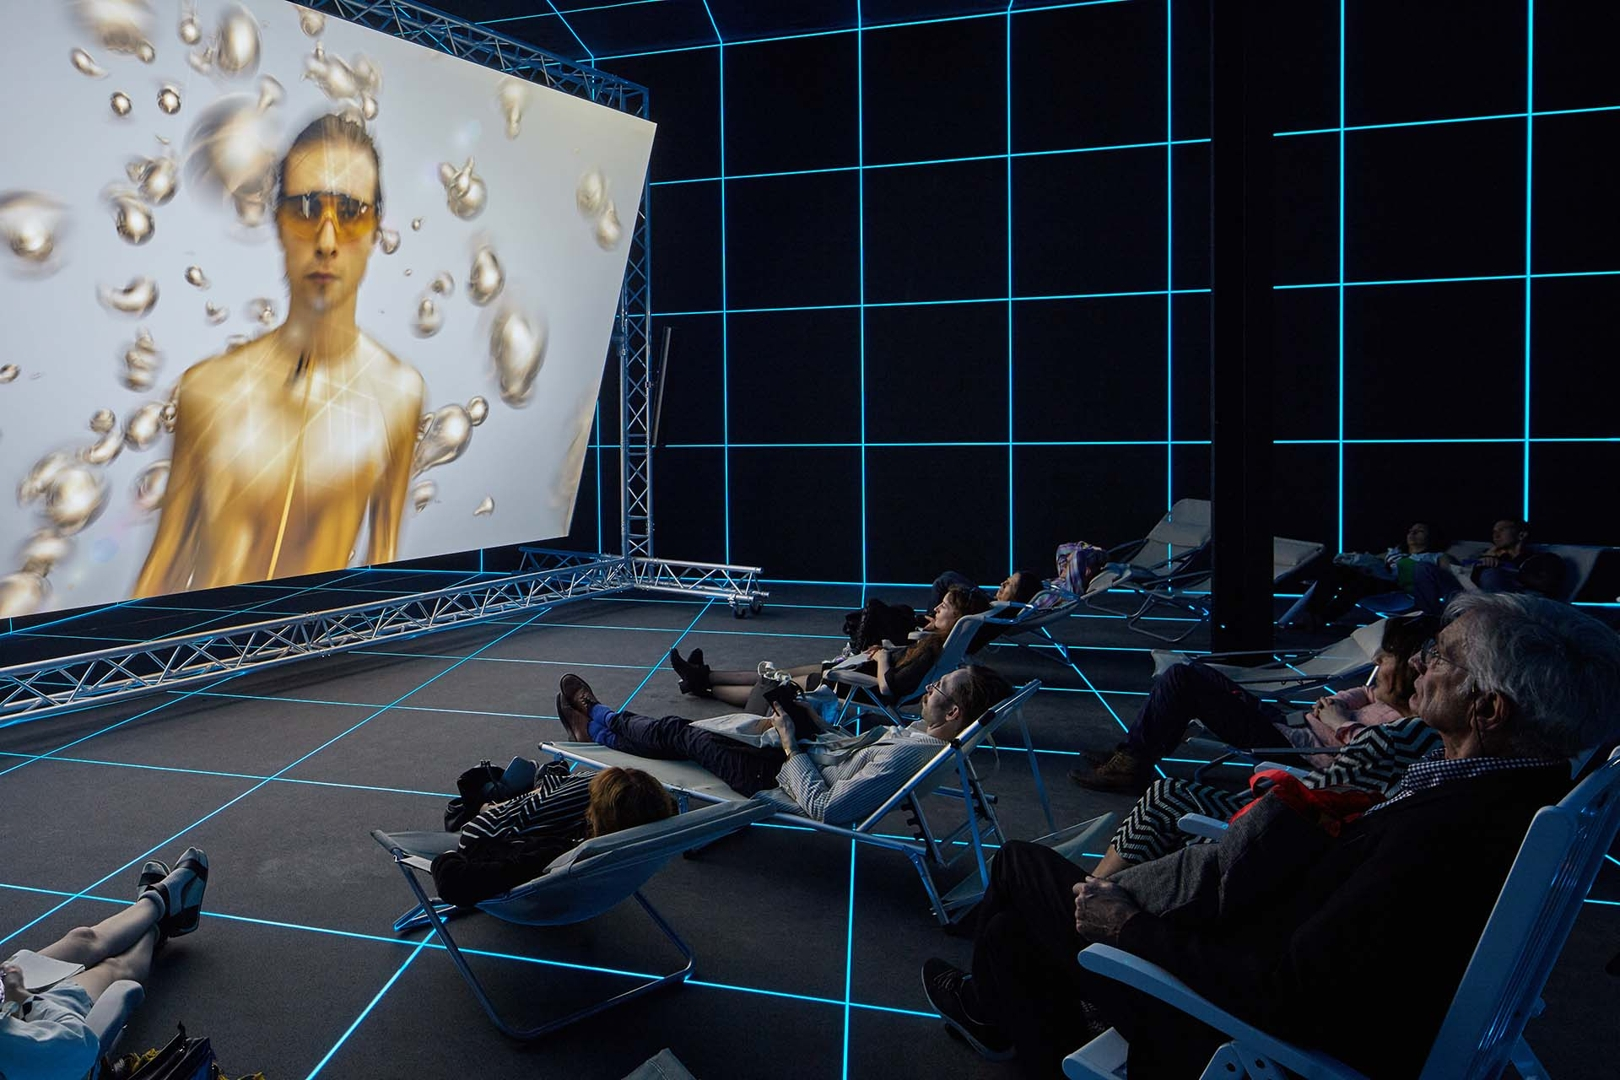 HITO STEYERL image